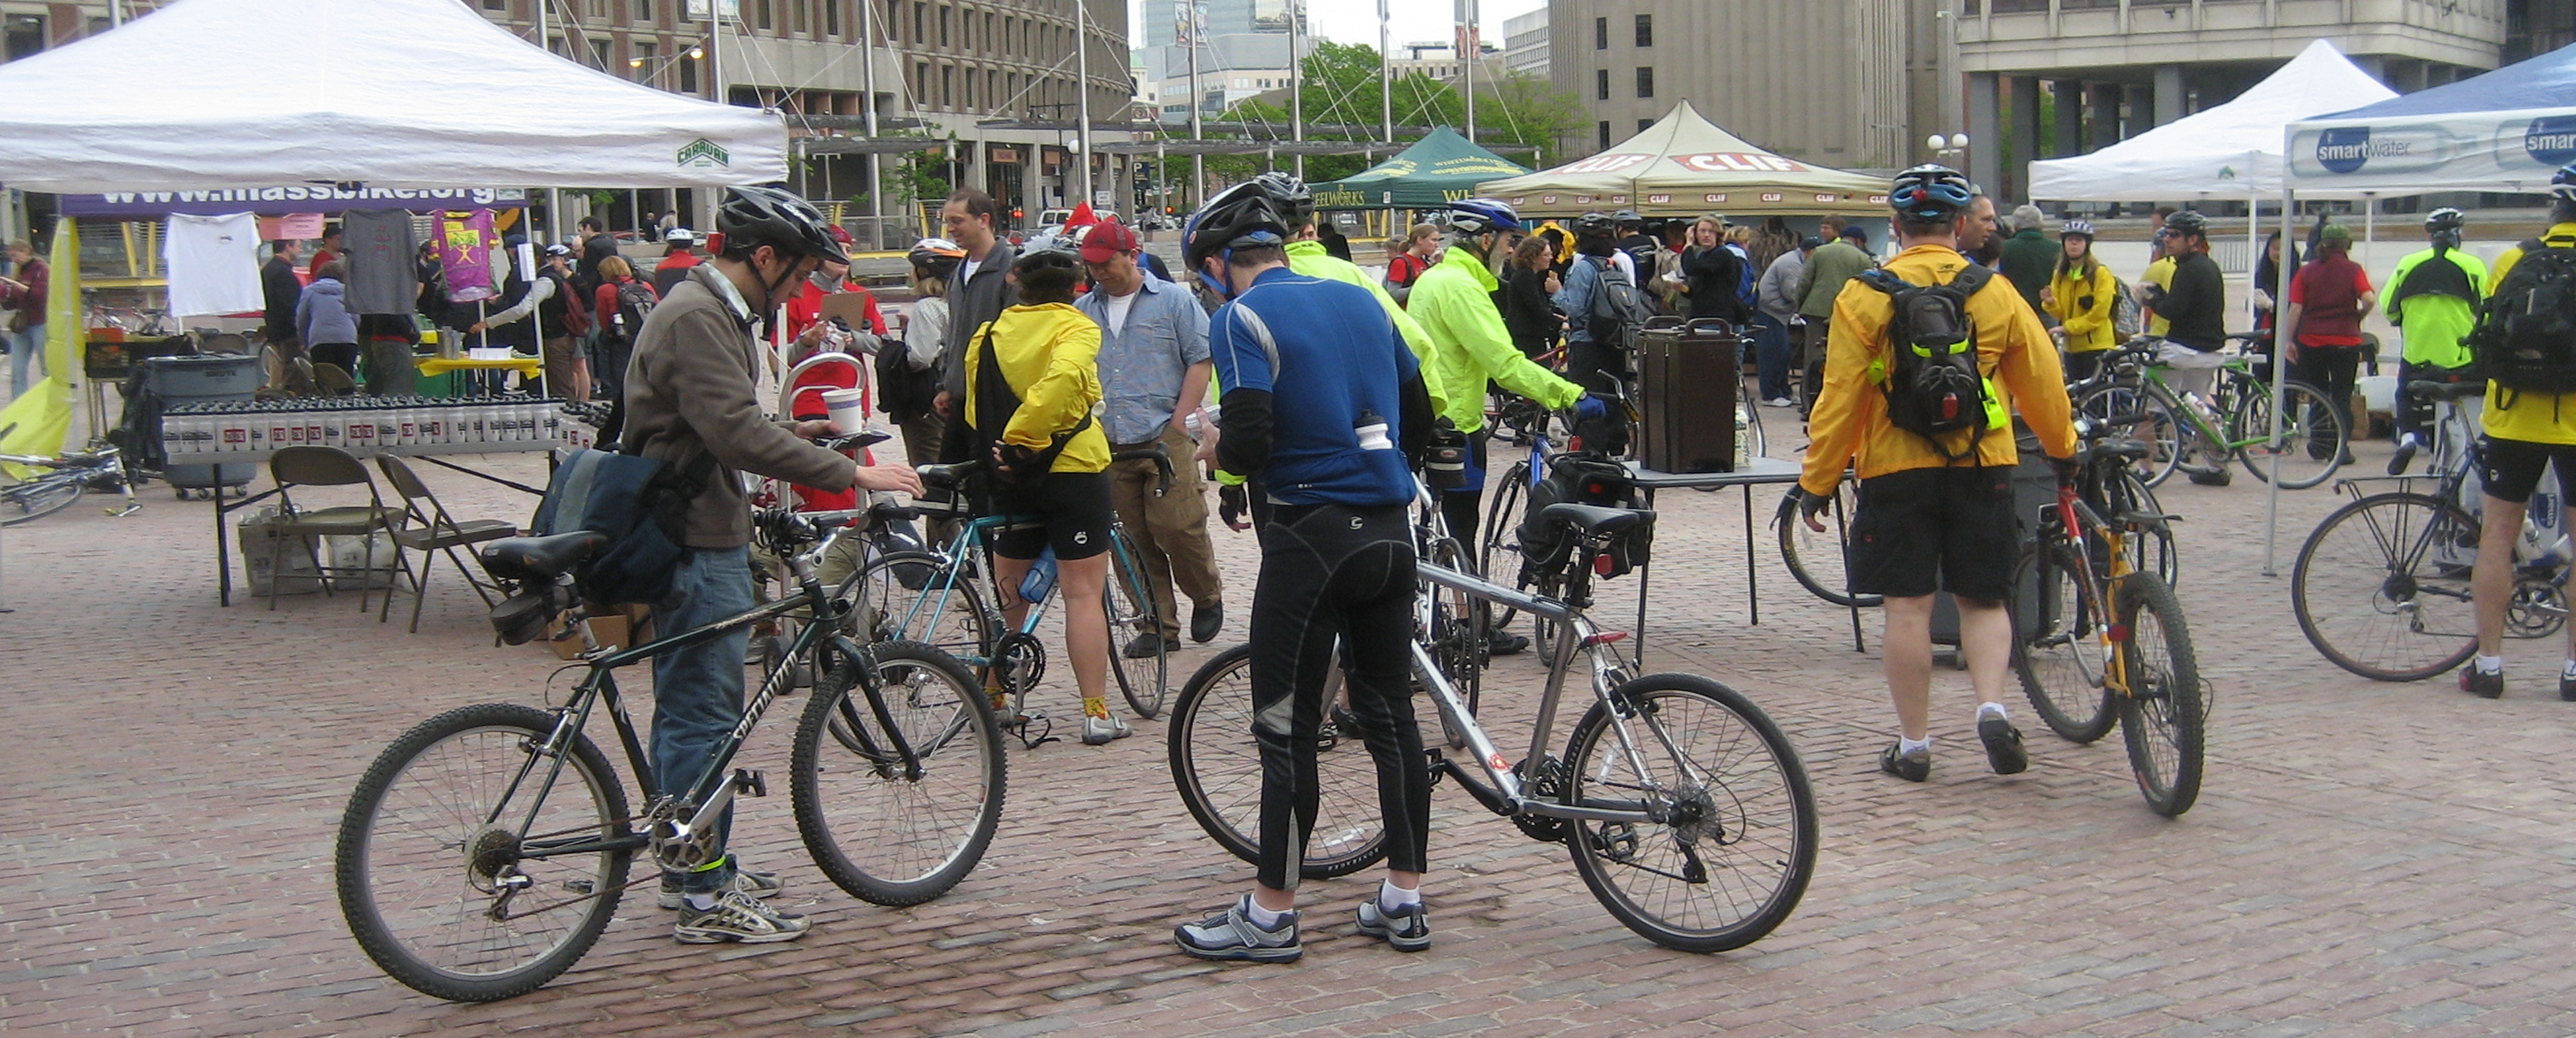 Bike_to_Work_Festival_image.png